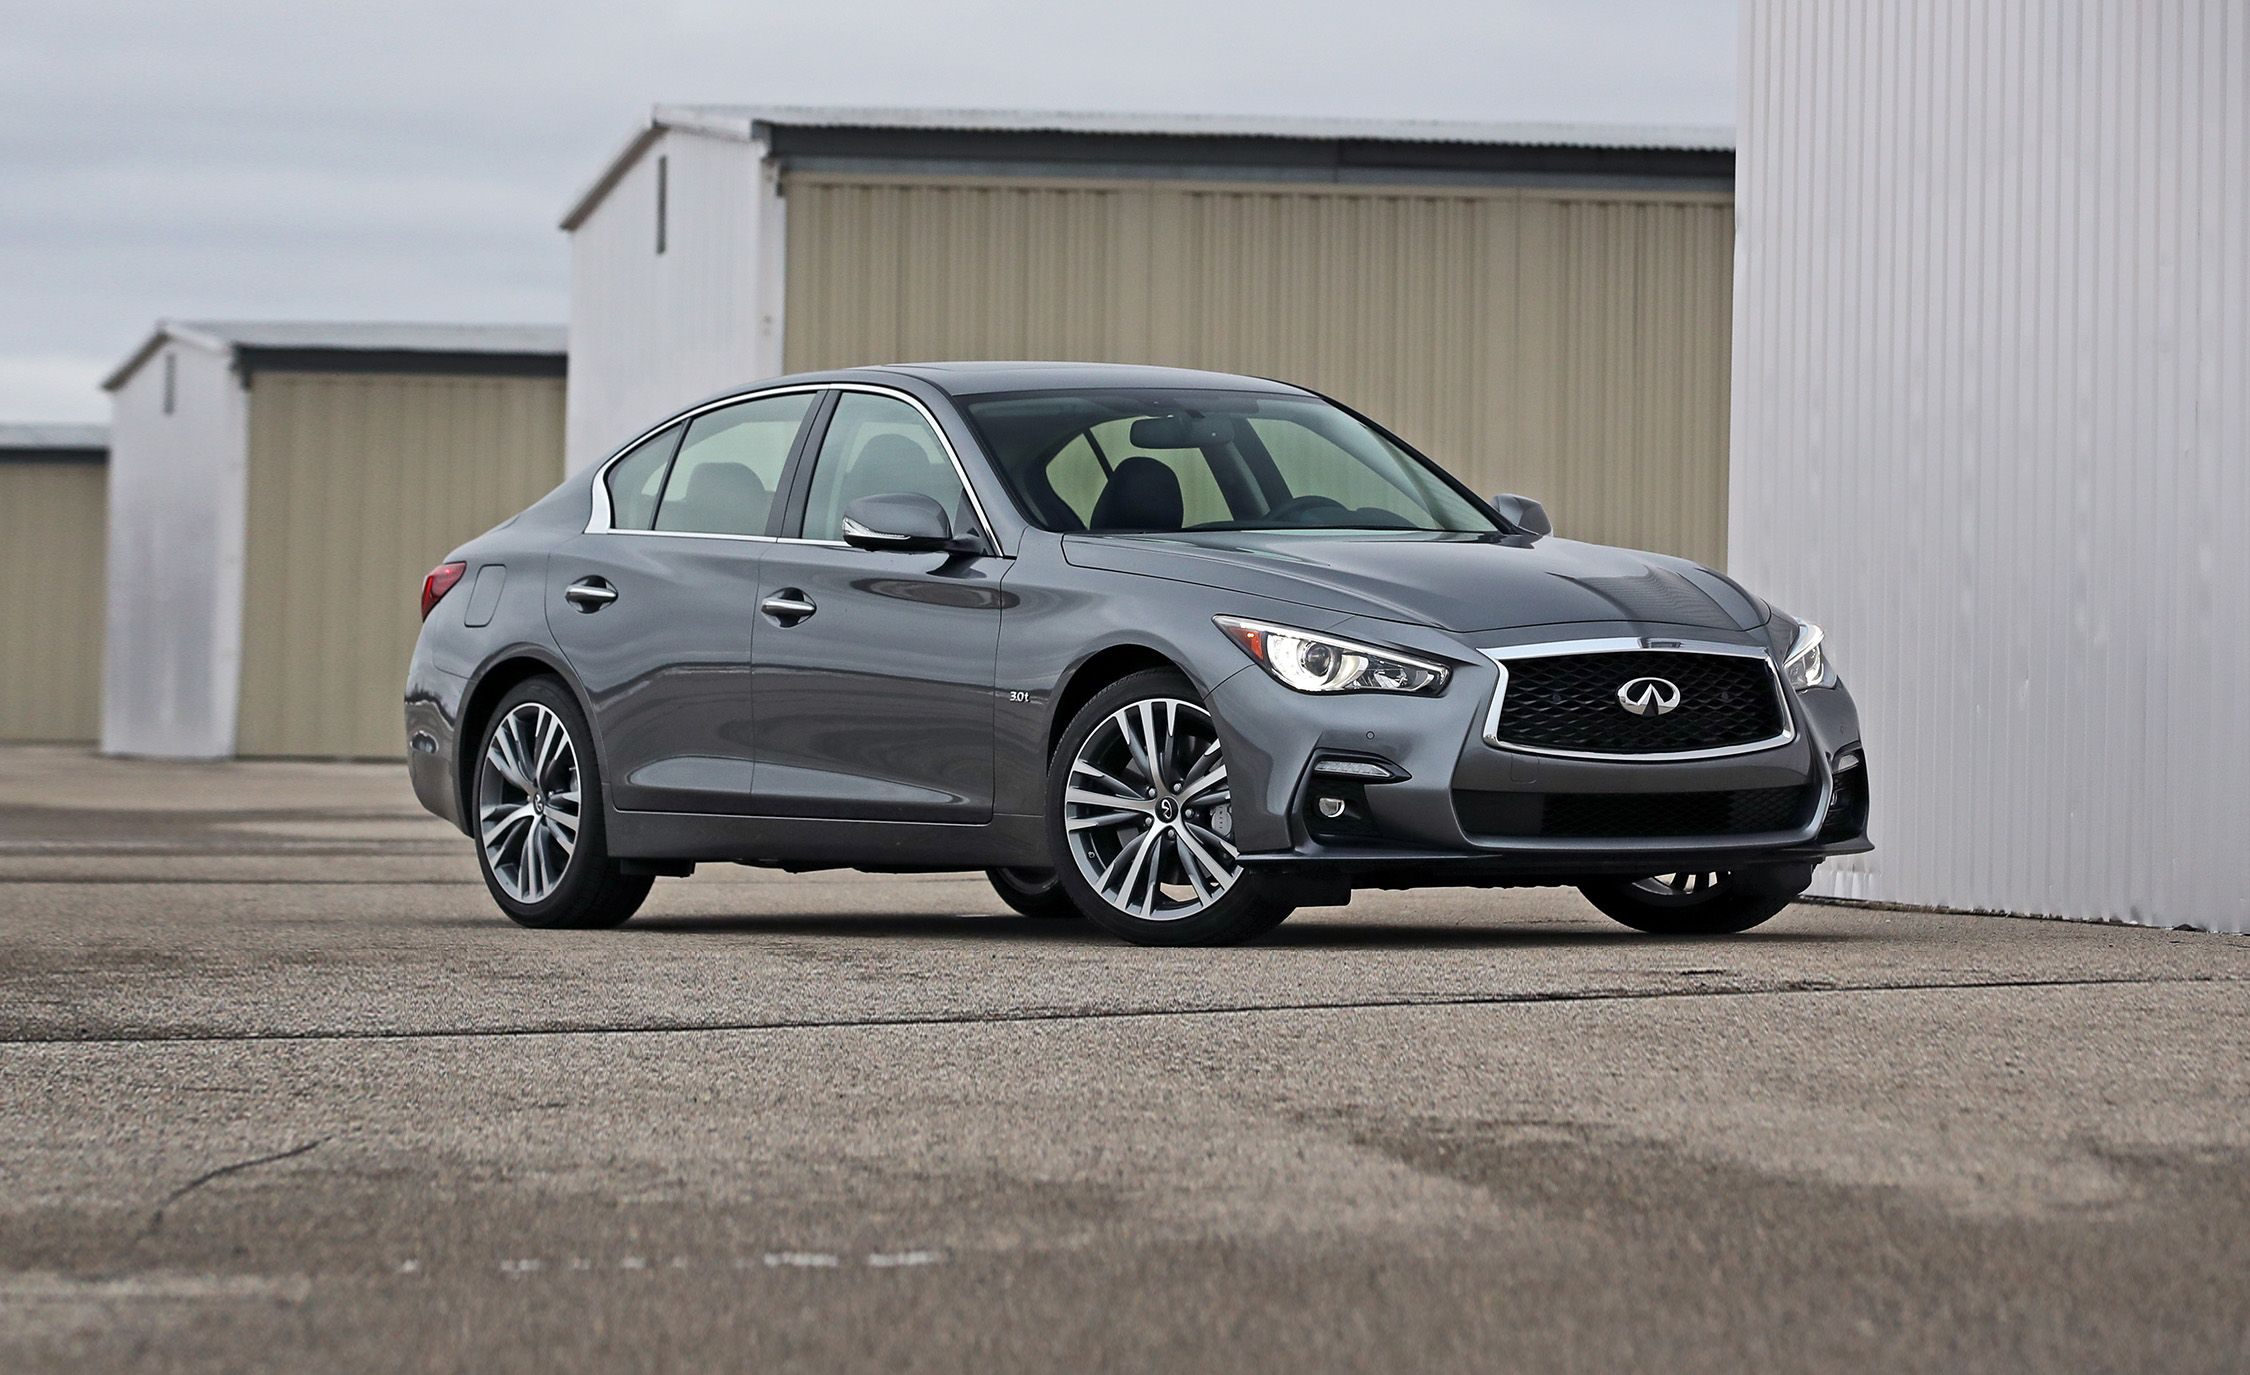 Infiniti Q50 0 60 >> Comments On 2018 Infiniti Q50 Car And Driver Backfires